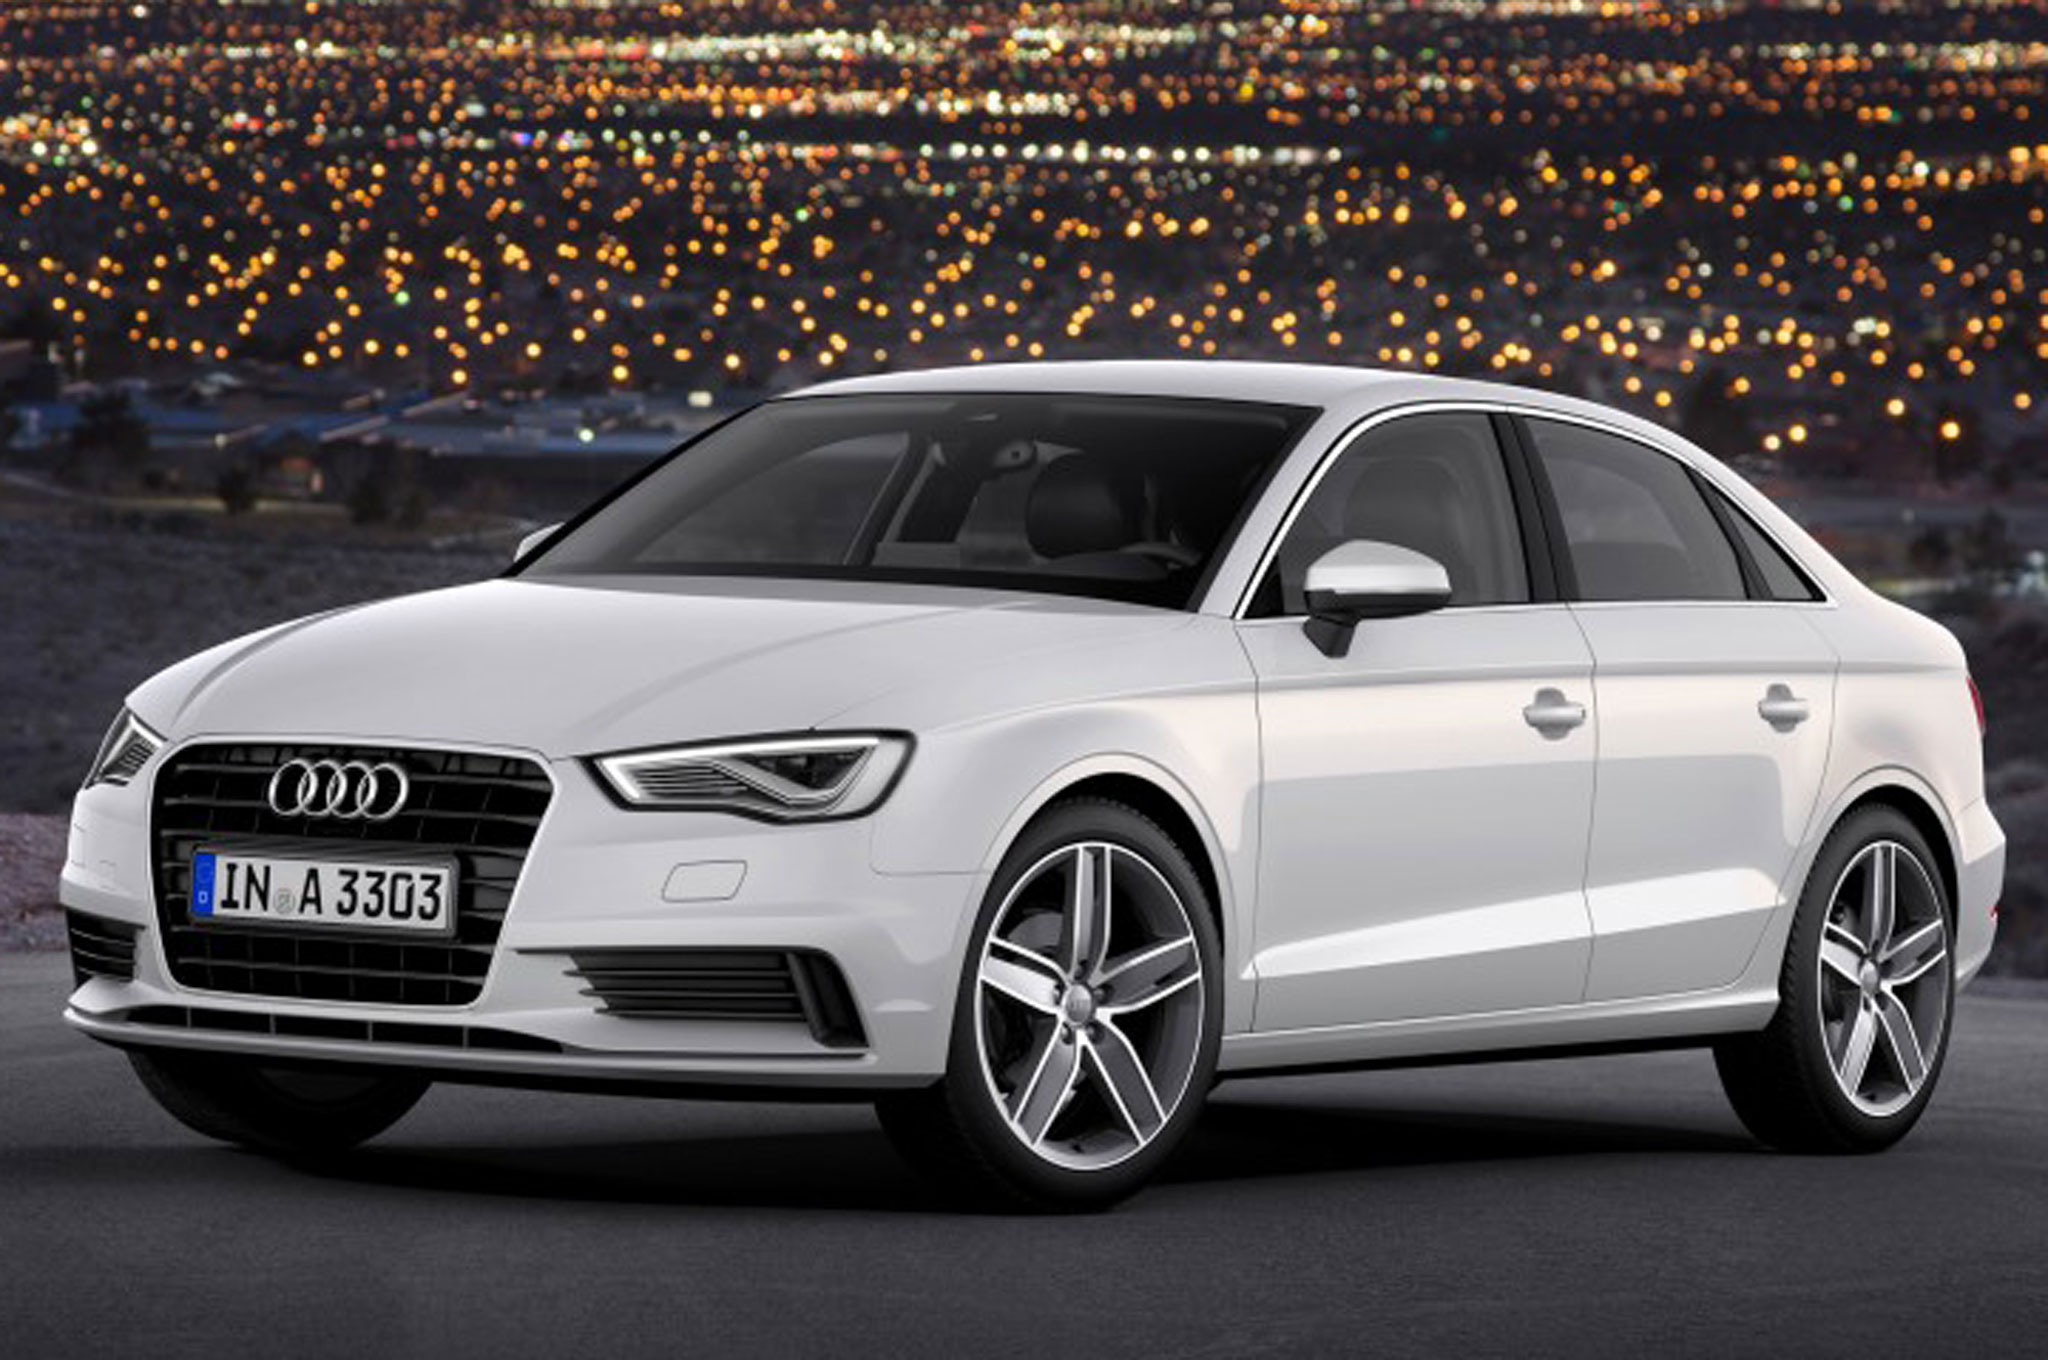 2015 Audi A3 Rated at 23/33 MPG, Quattro Boasts Better City Rating